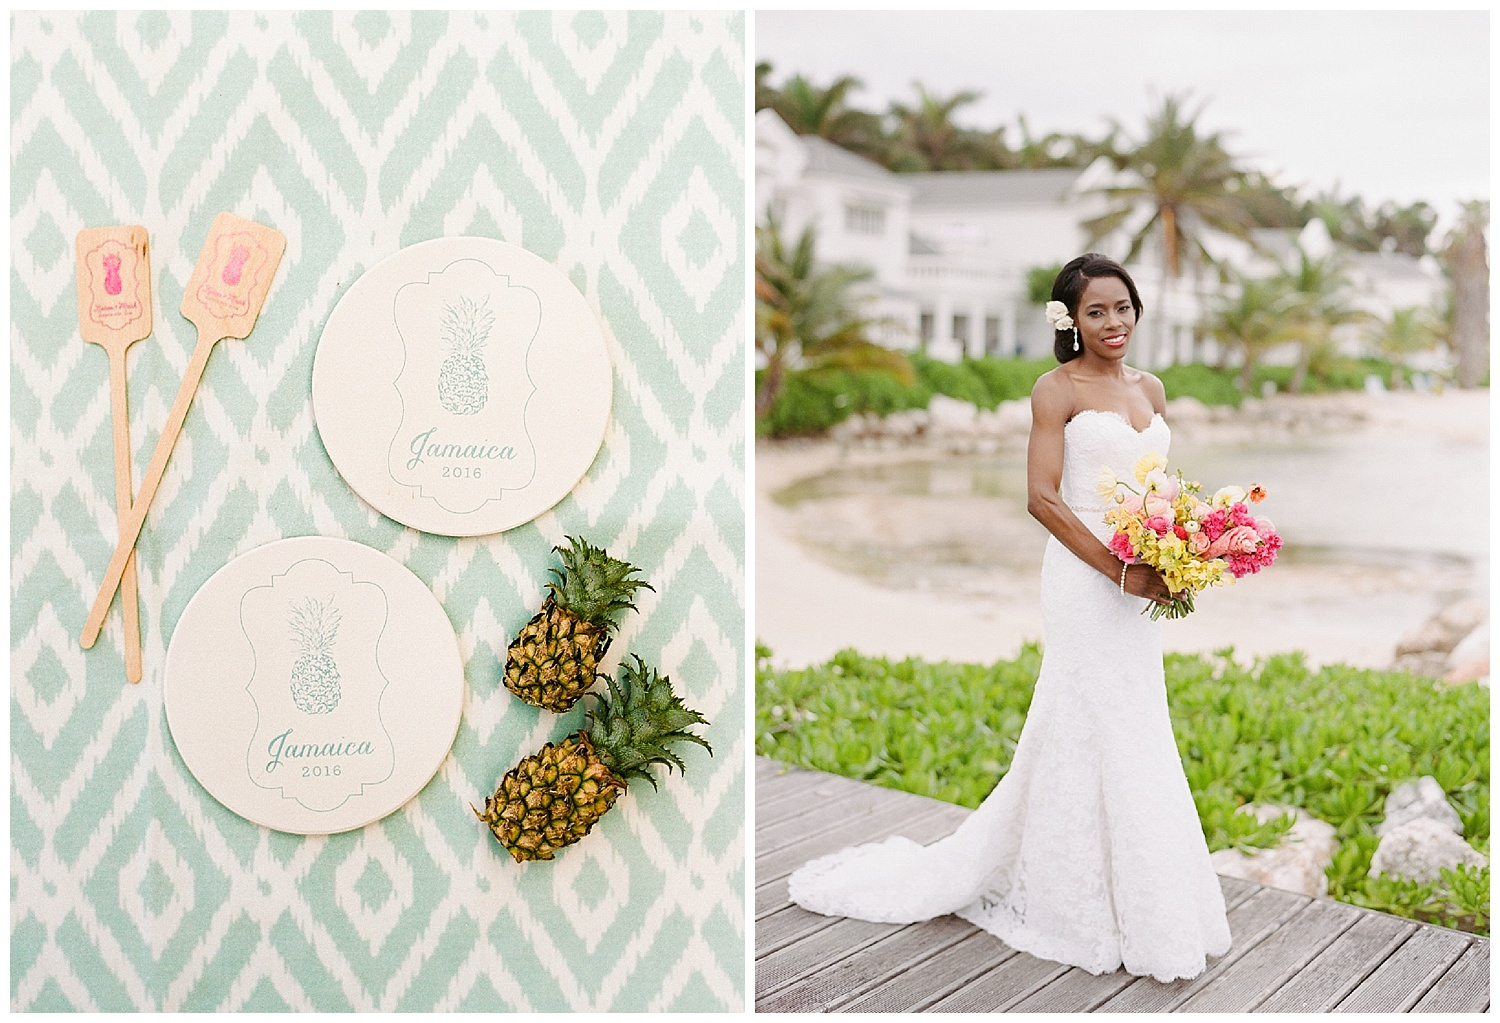 Pineapple motif coasters and drink stirrers, ikat patterns for a Montego Bay, Jamaica wedding; Sylvie Gil Photography